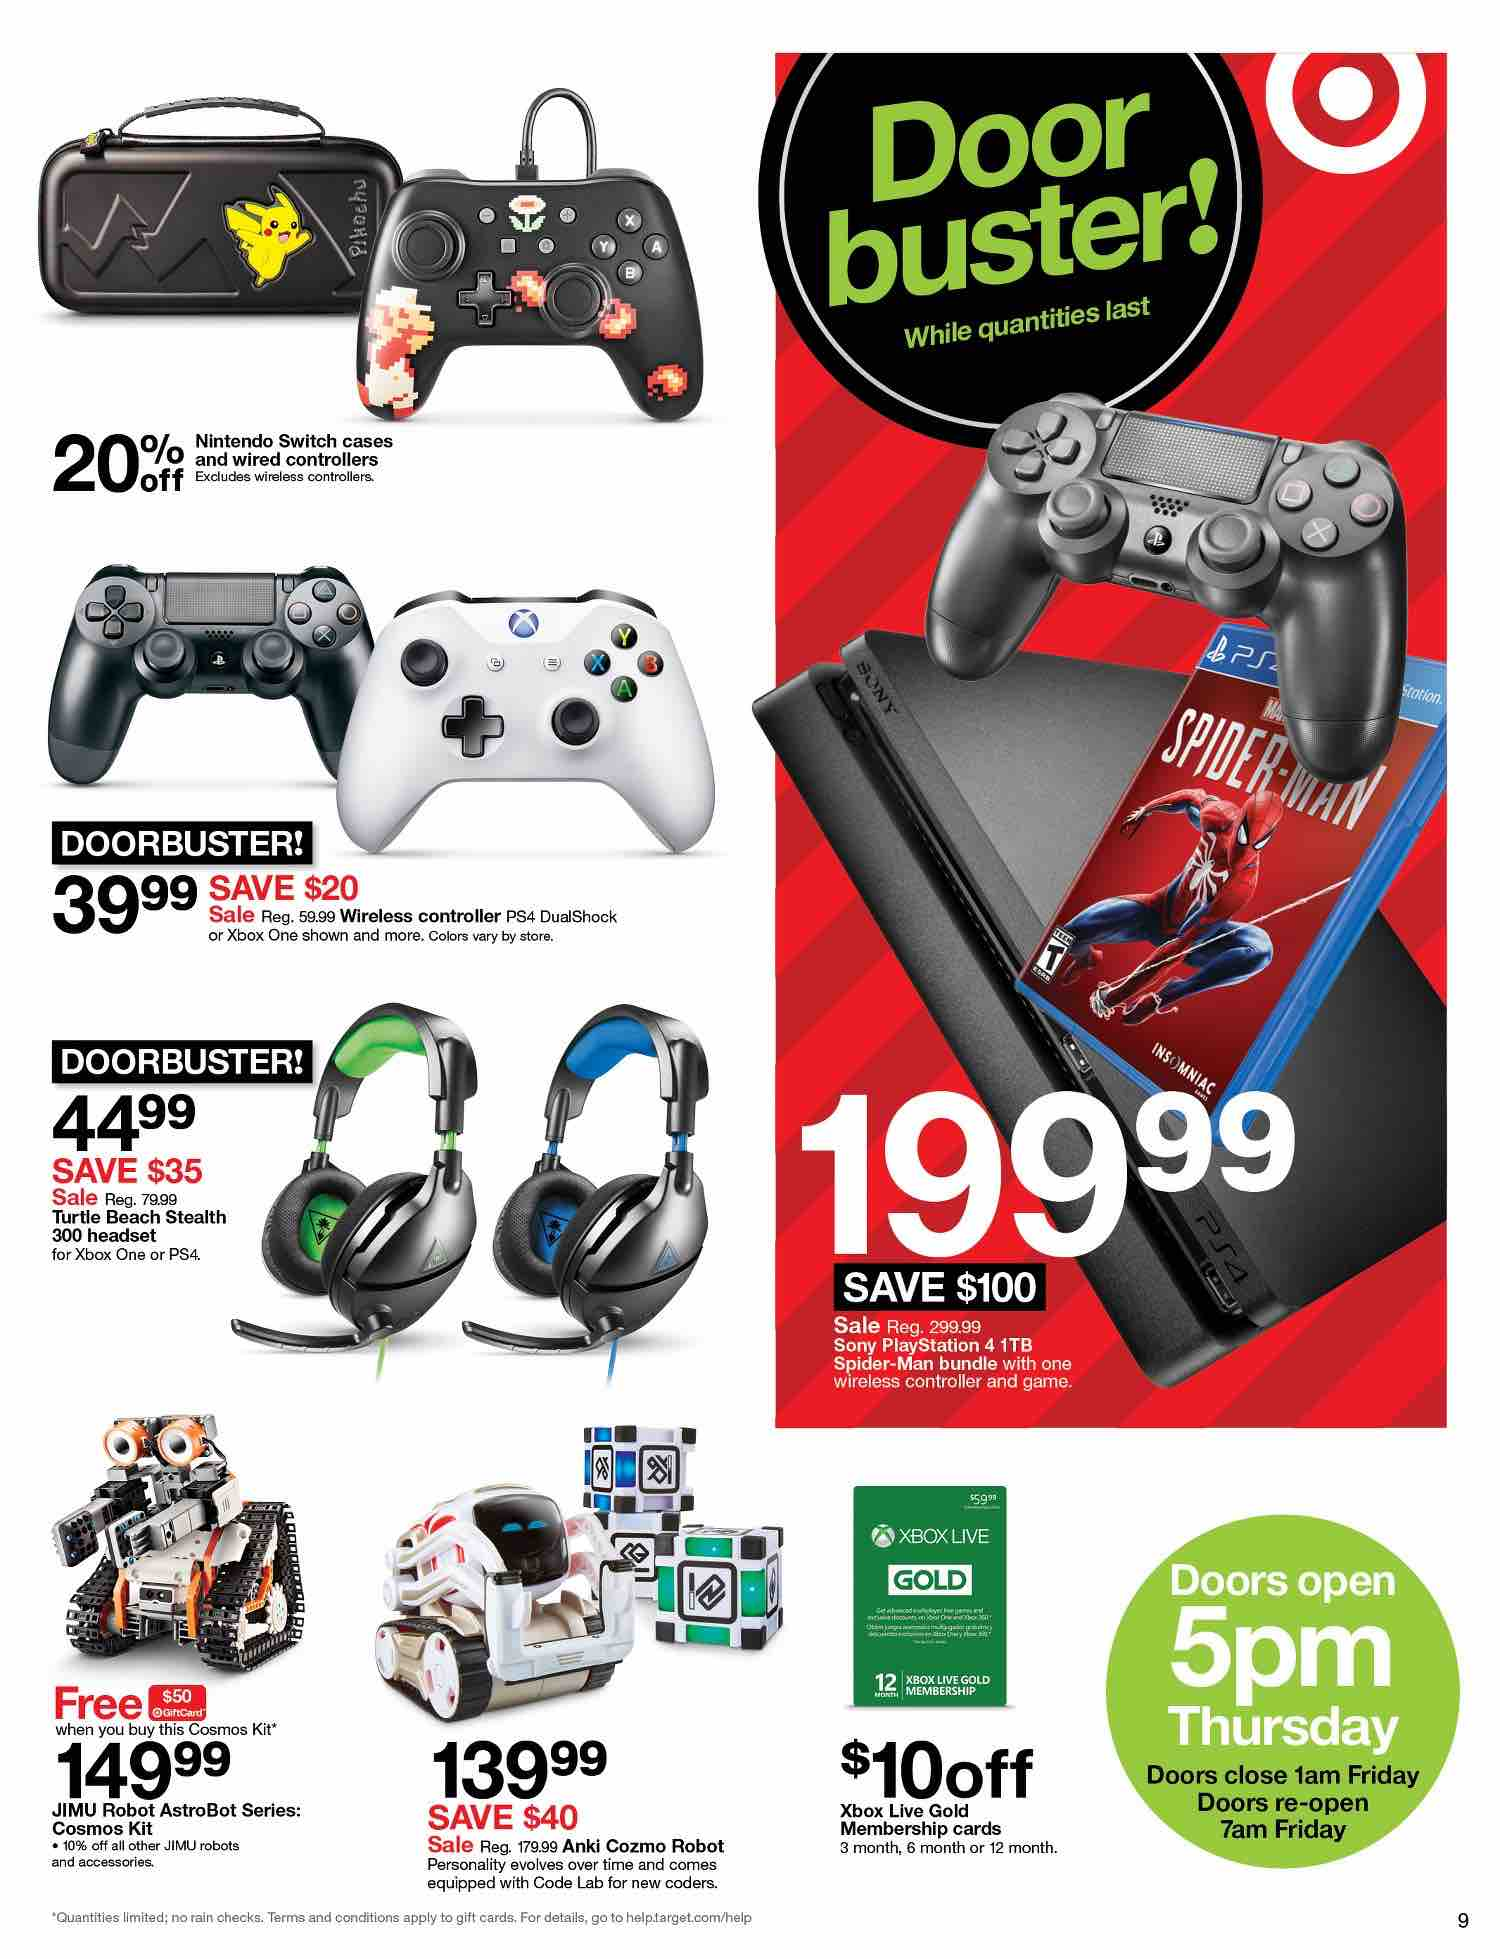 Target Black Friday Video Game Deals Include Free Mario Kart